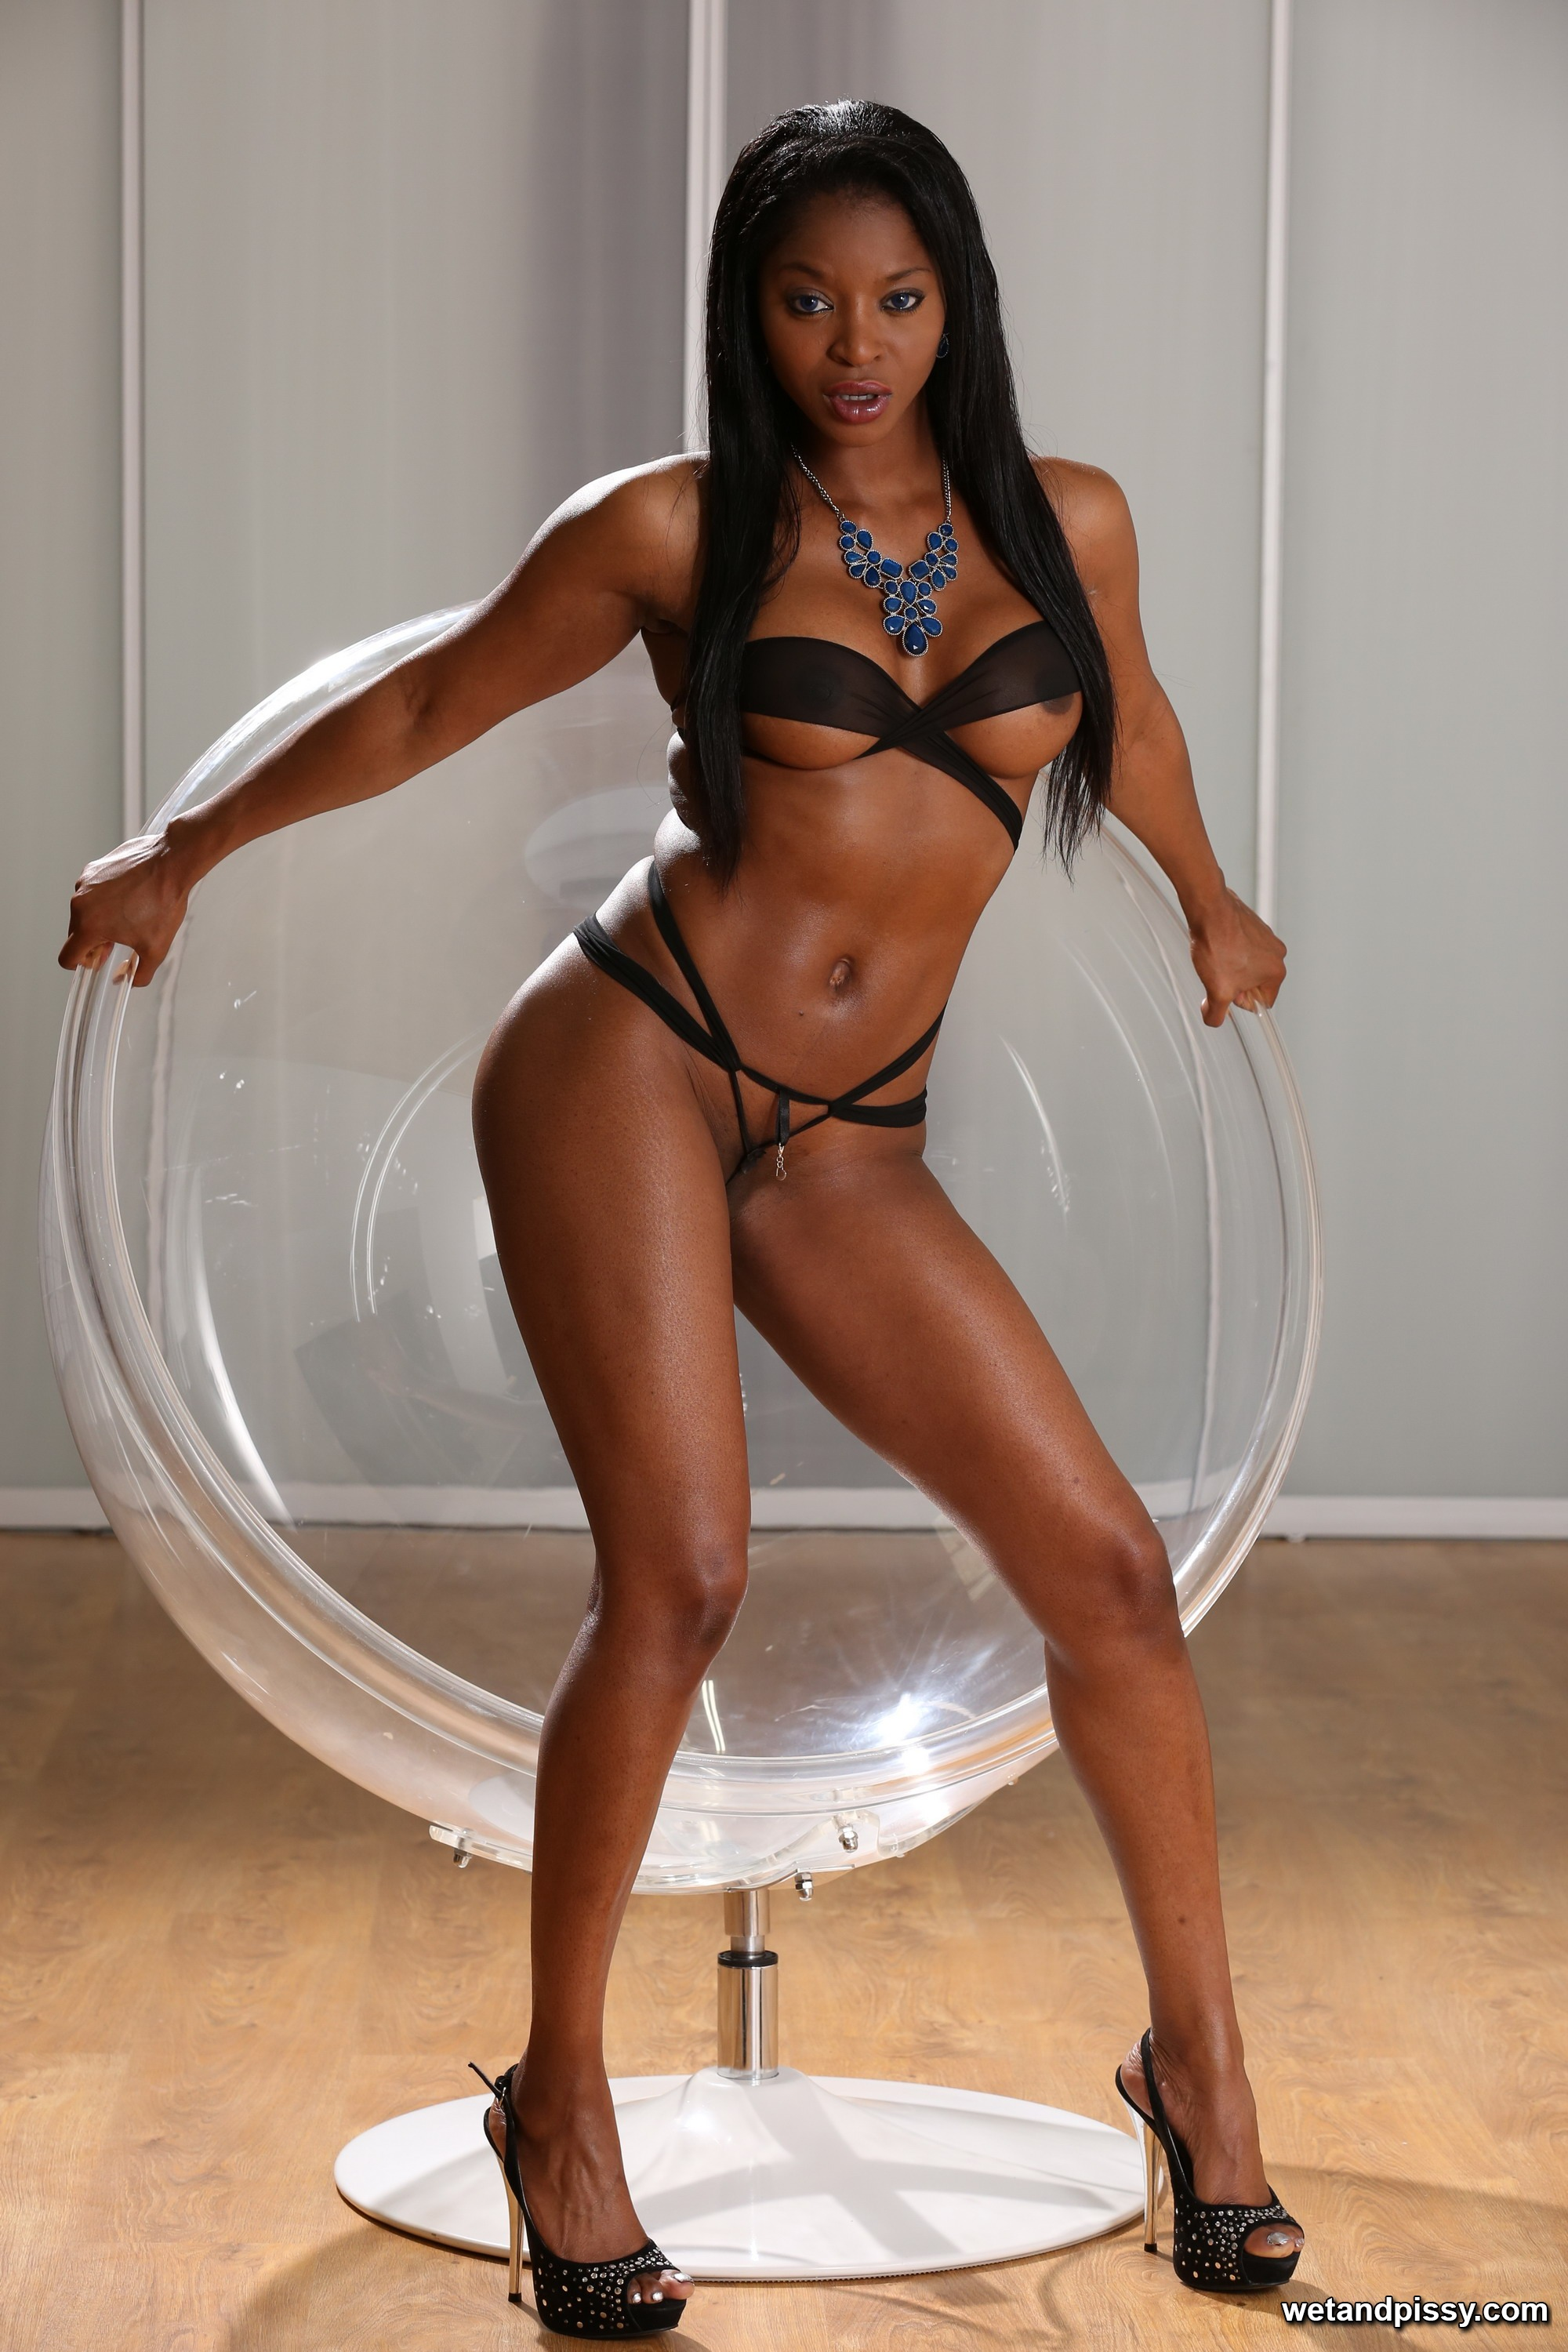 image Anya ivy loves to show her big black boobs